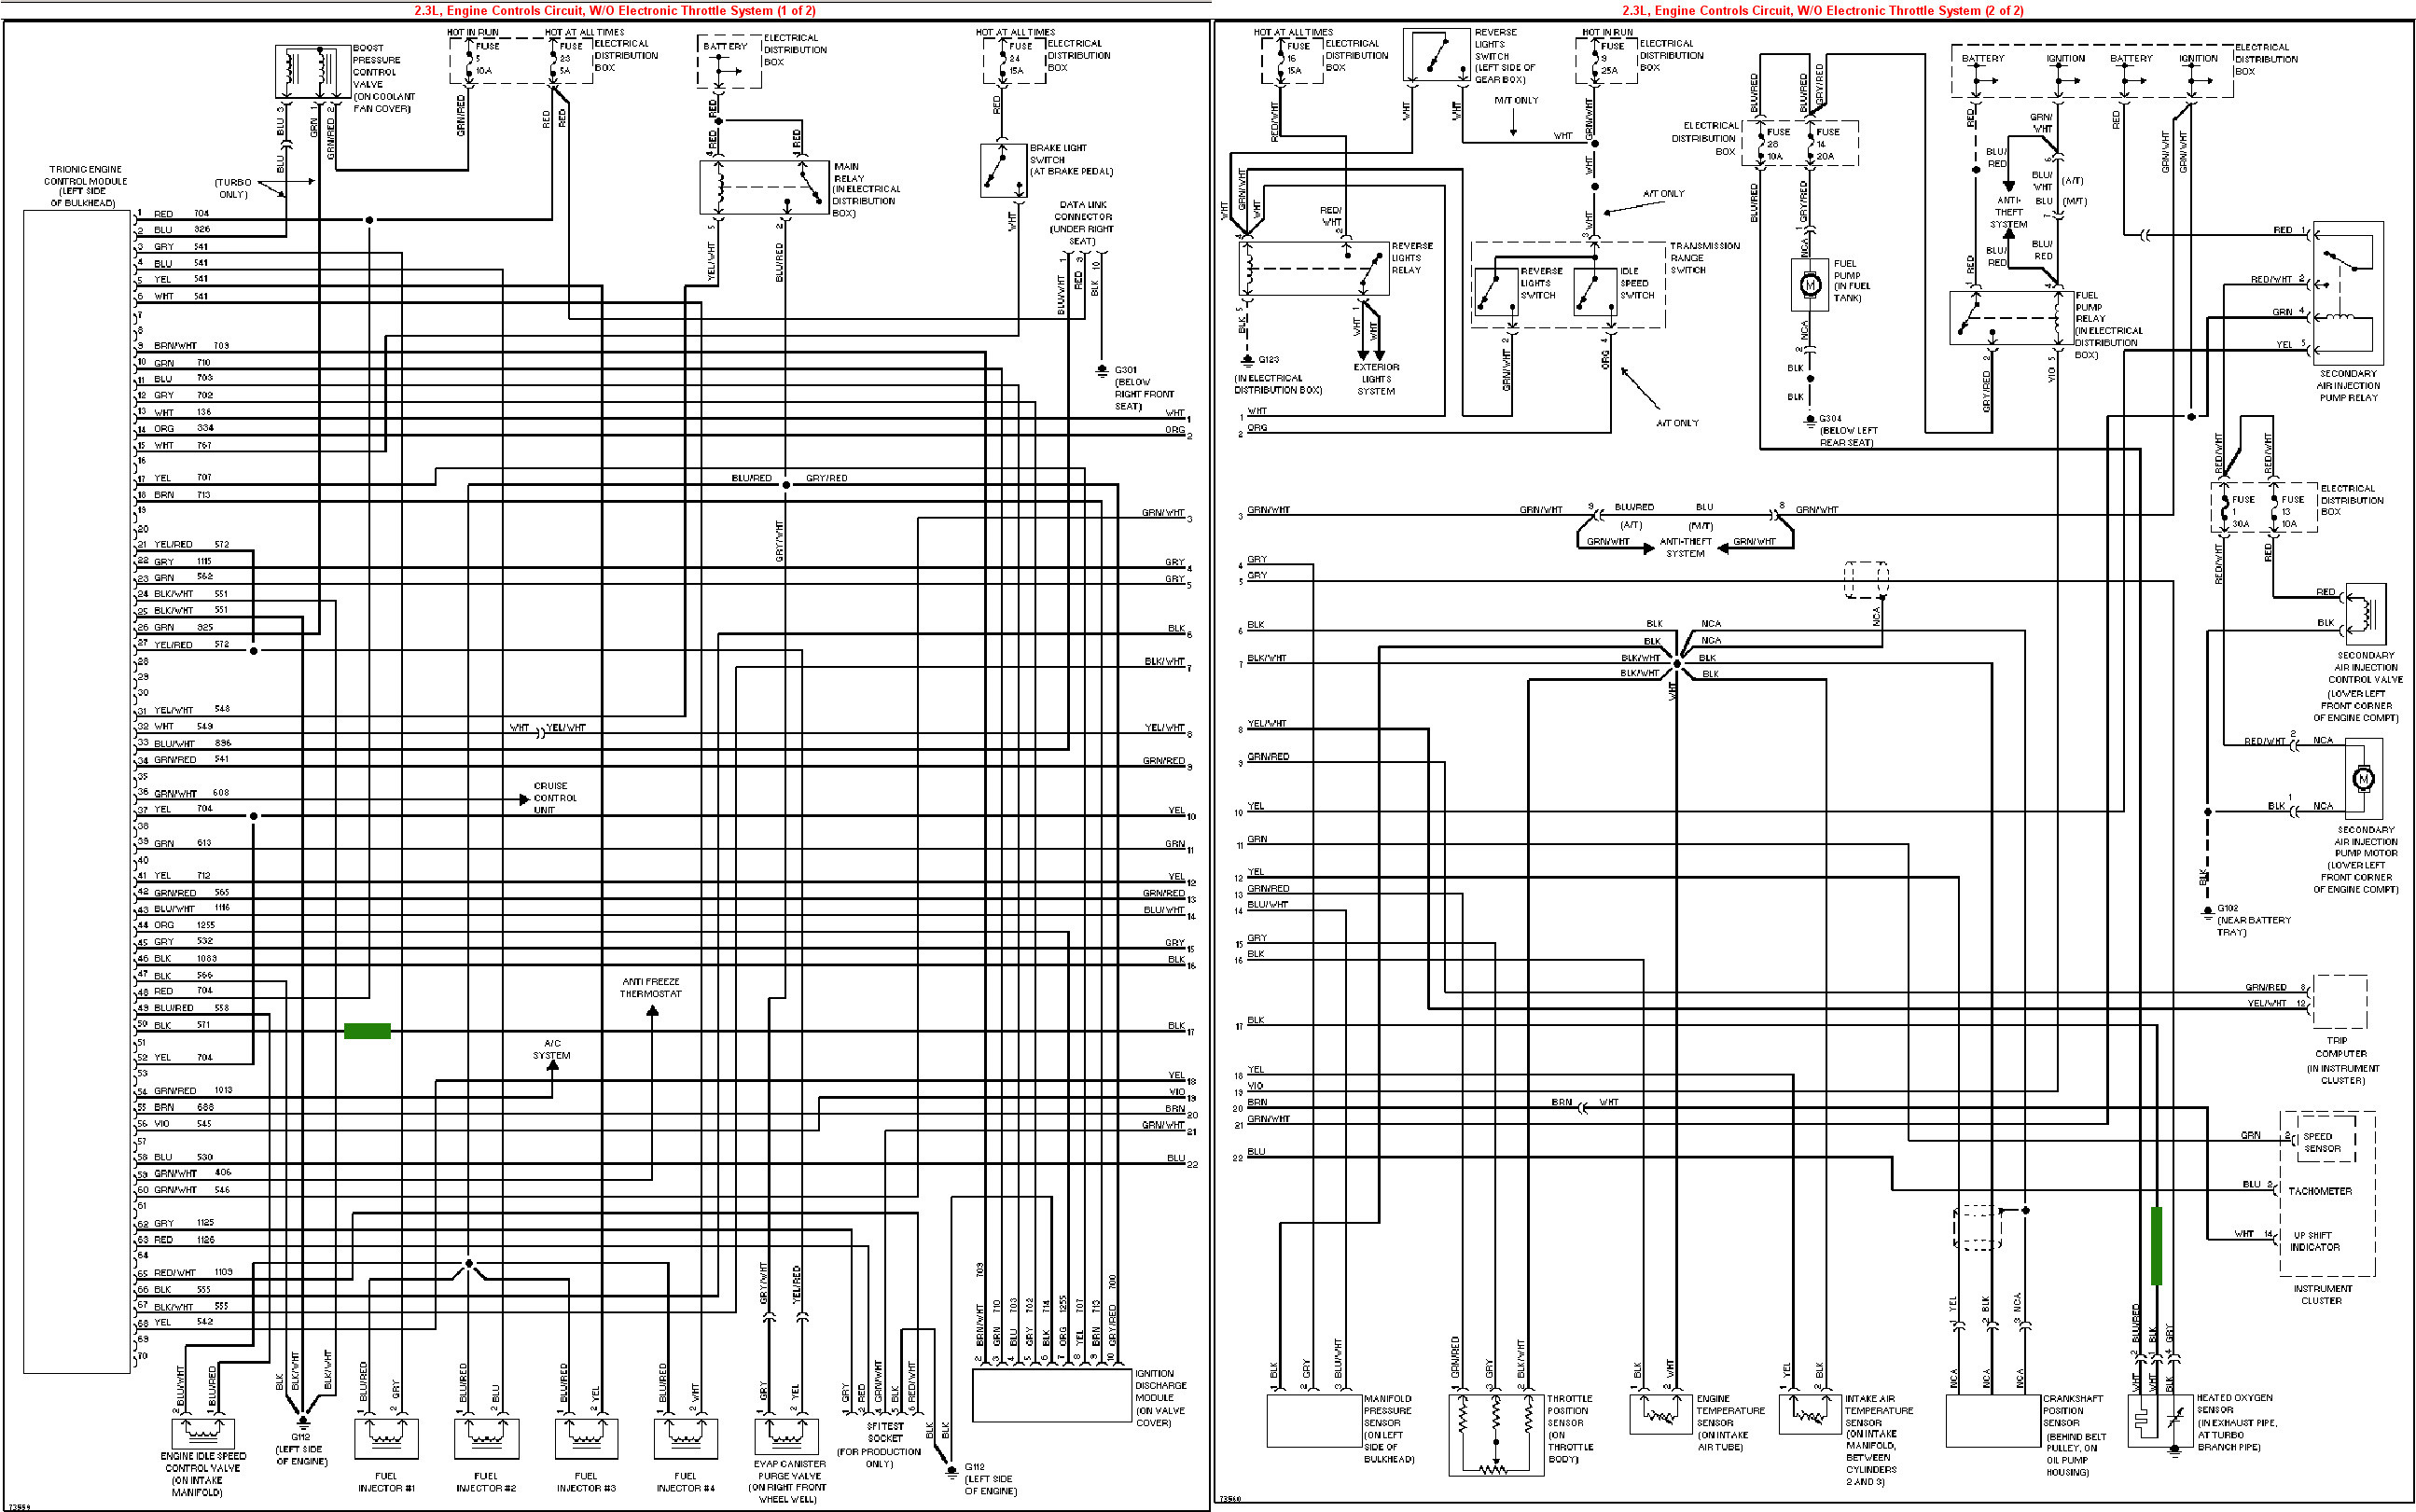 saab 900 engine diagram saab circuit diagrams